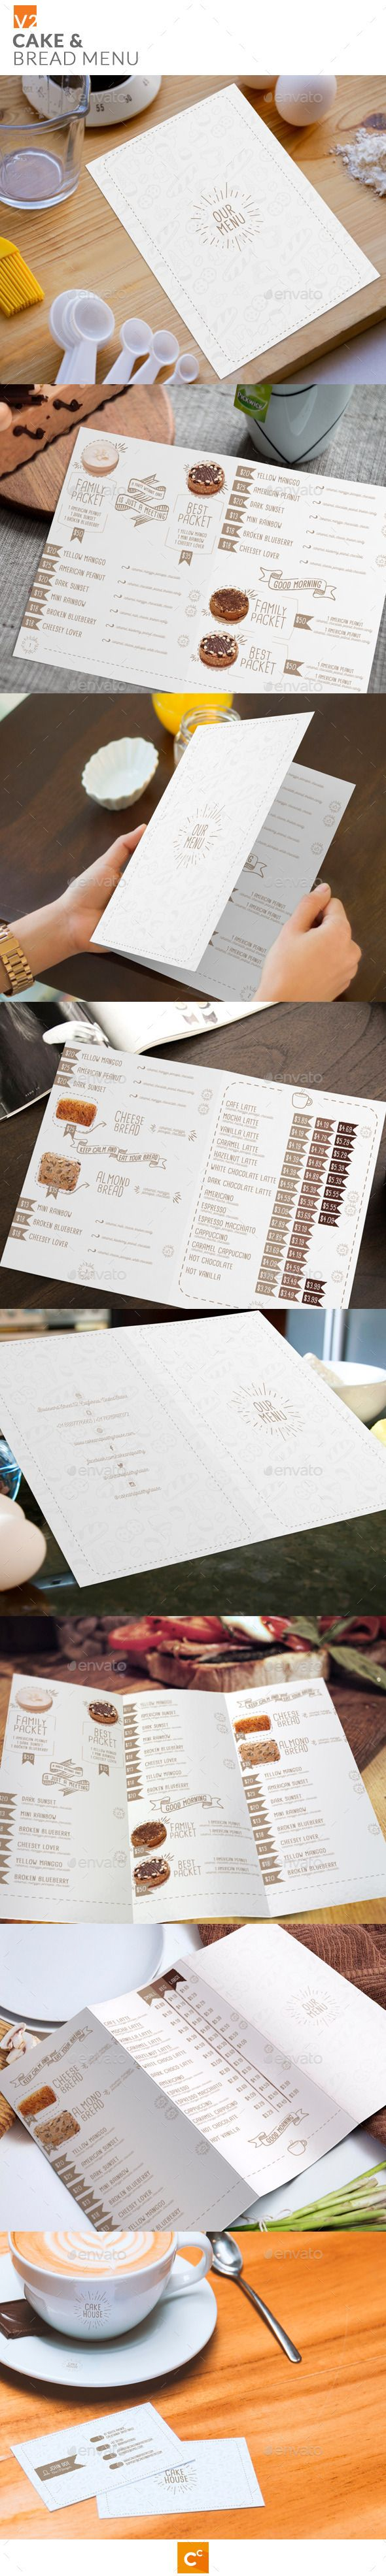 Cake & Bread Menu Template #design Download: http://graphicriver.net/item/cake-bread-menu-v2/11370393?ref=ksioks